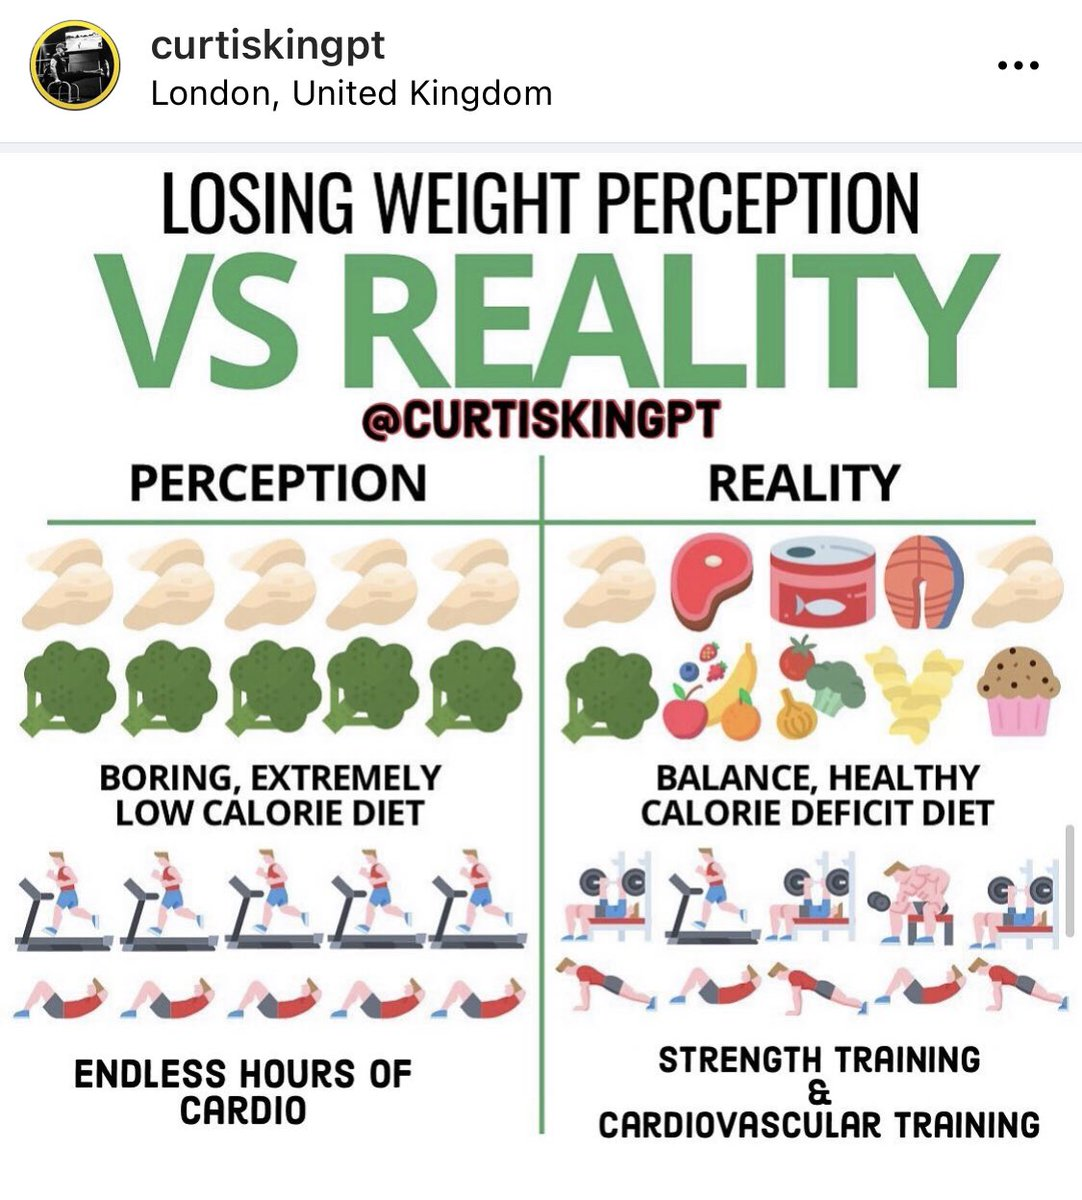 #givewhitemenachance #COVID19 #fitness #gym #workout #NutritionMonth #nutrition #FitnessMotivation #fitluty